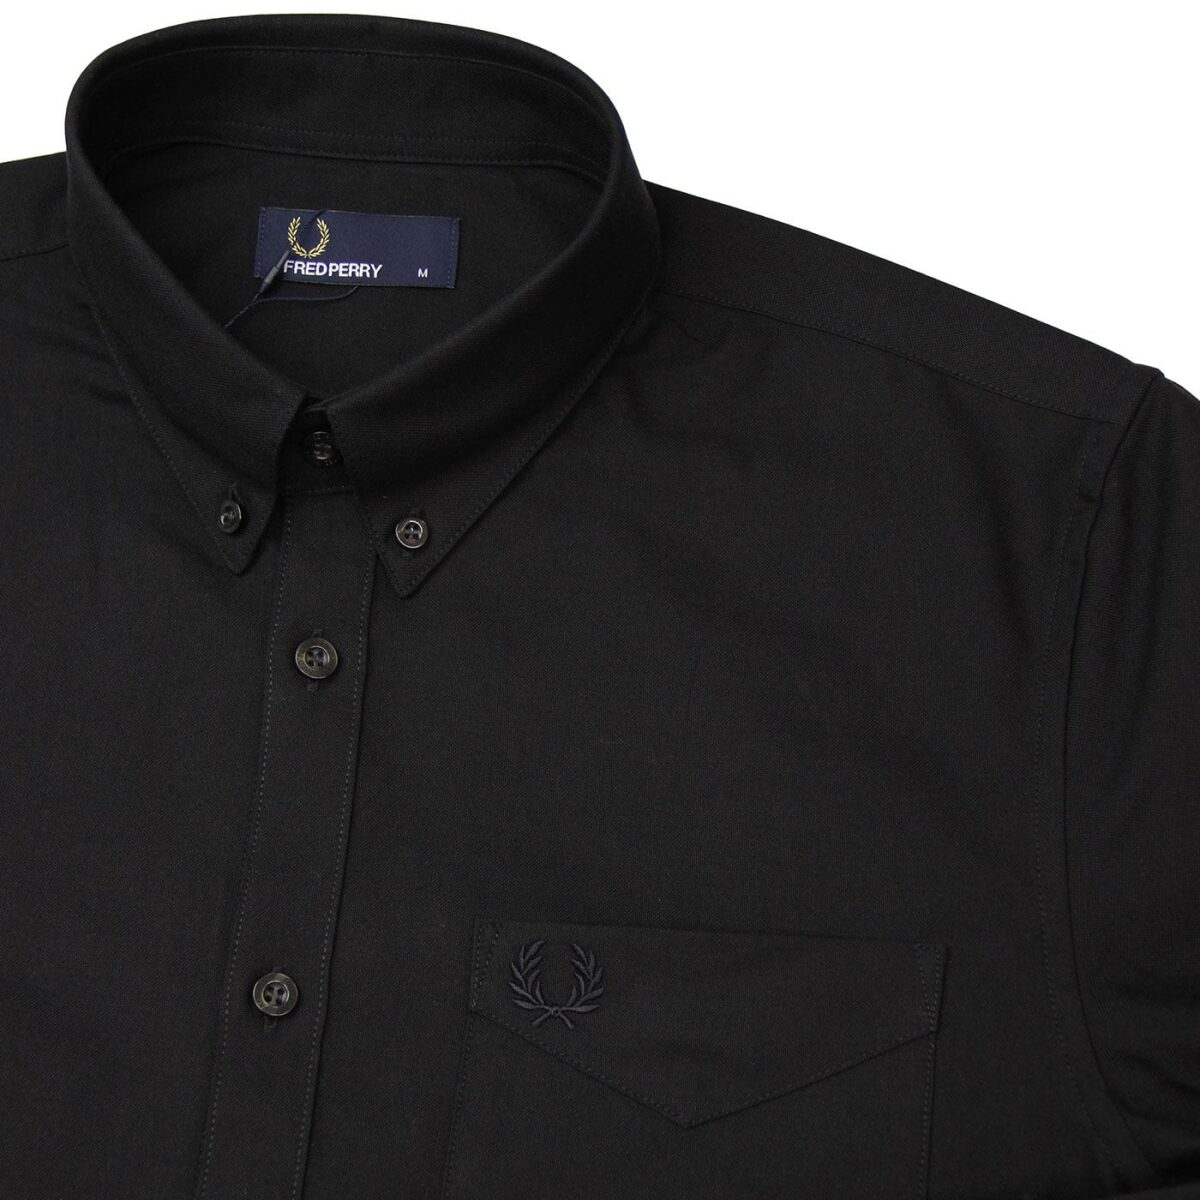 fred perry button down oxford shirt black 1